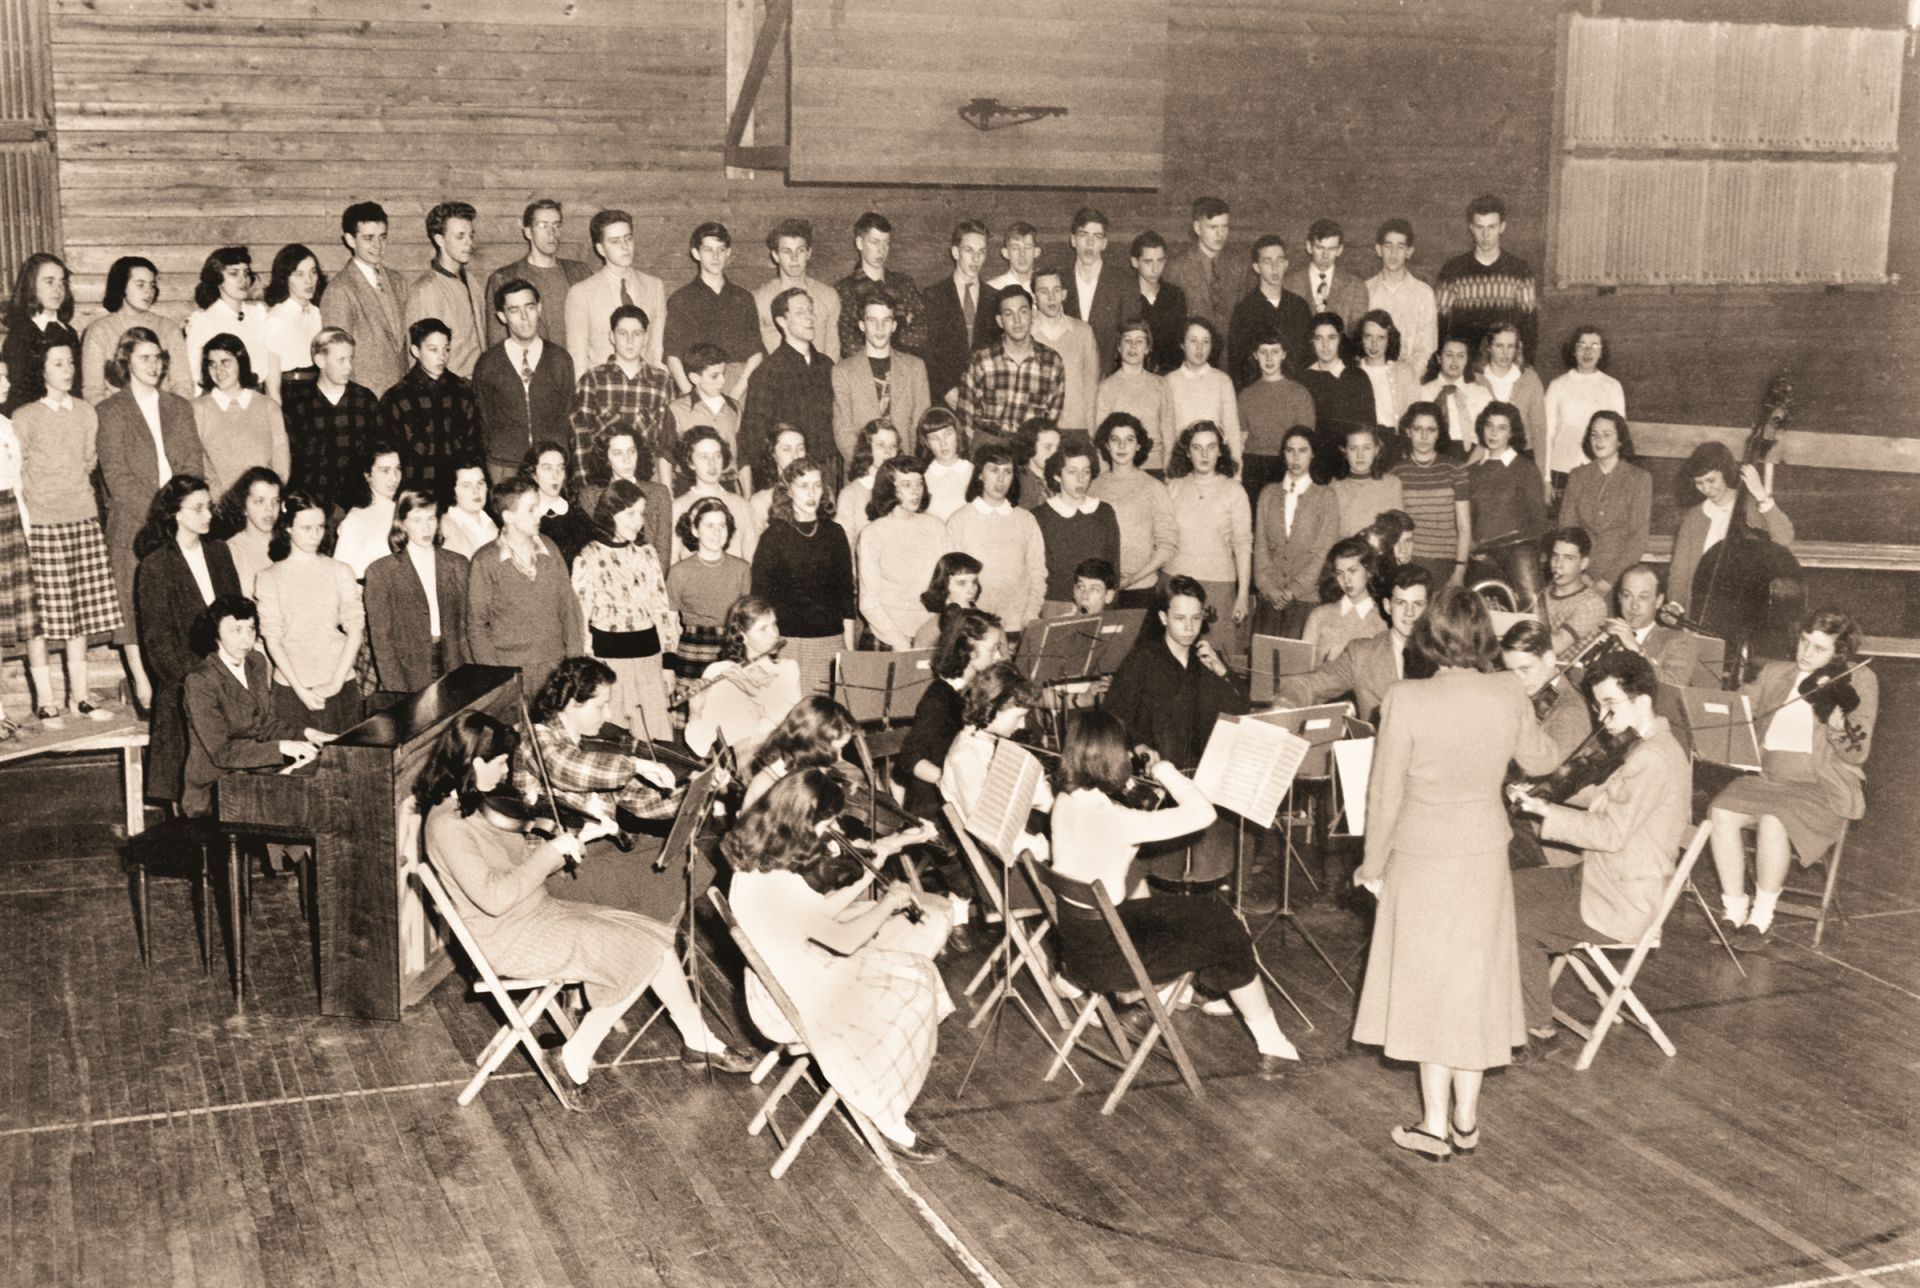 The Park School Orchestra and a variety of choruses date to the 1940s.